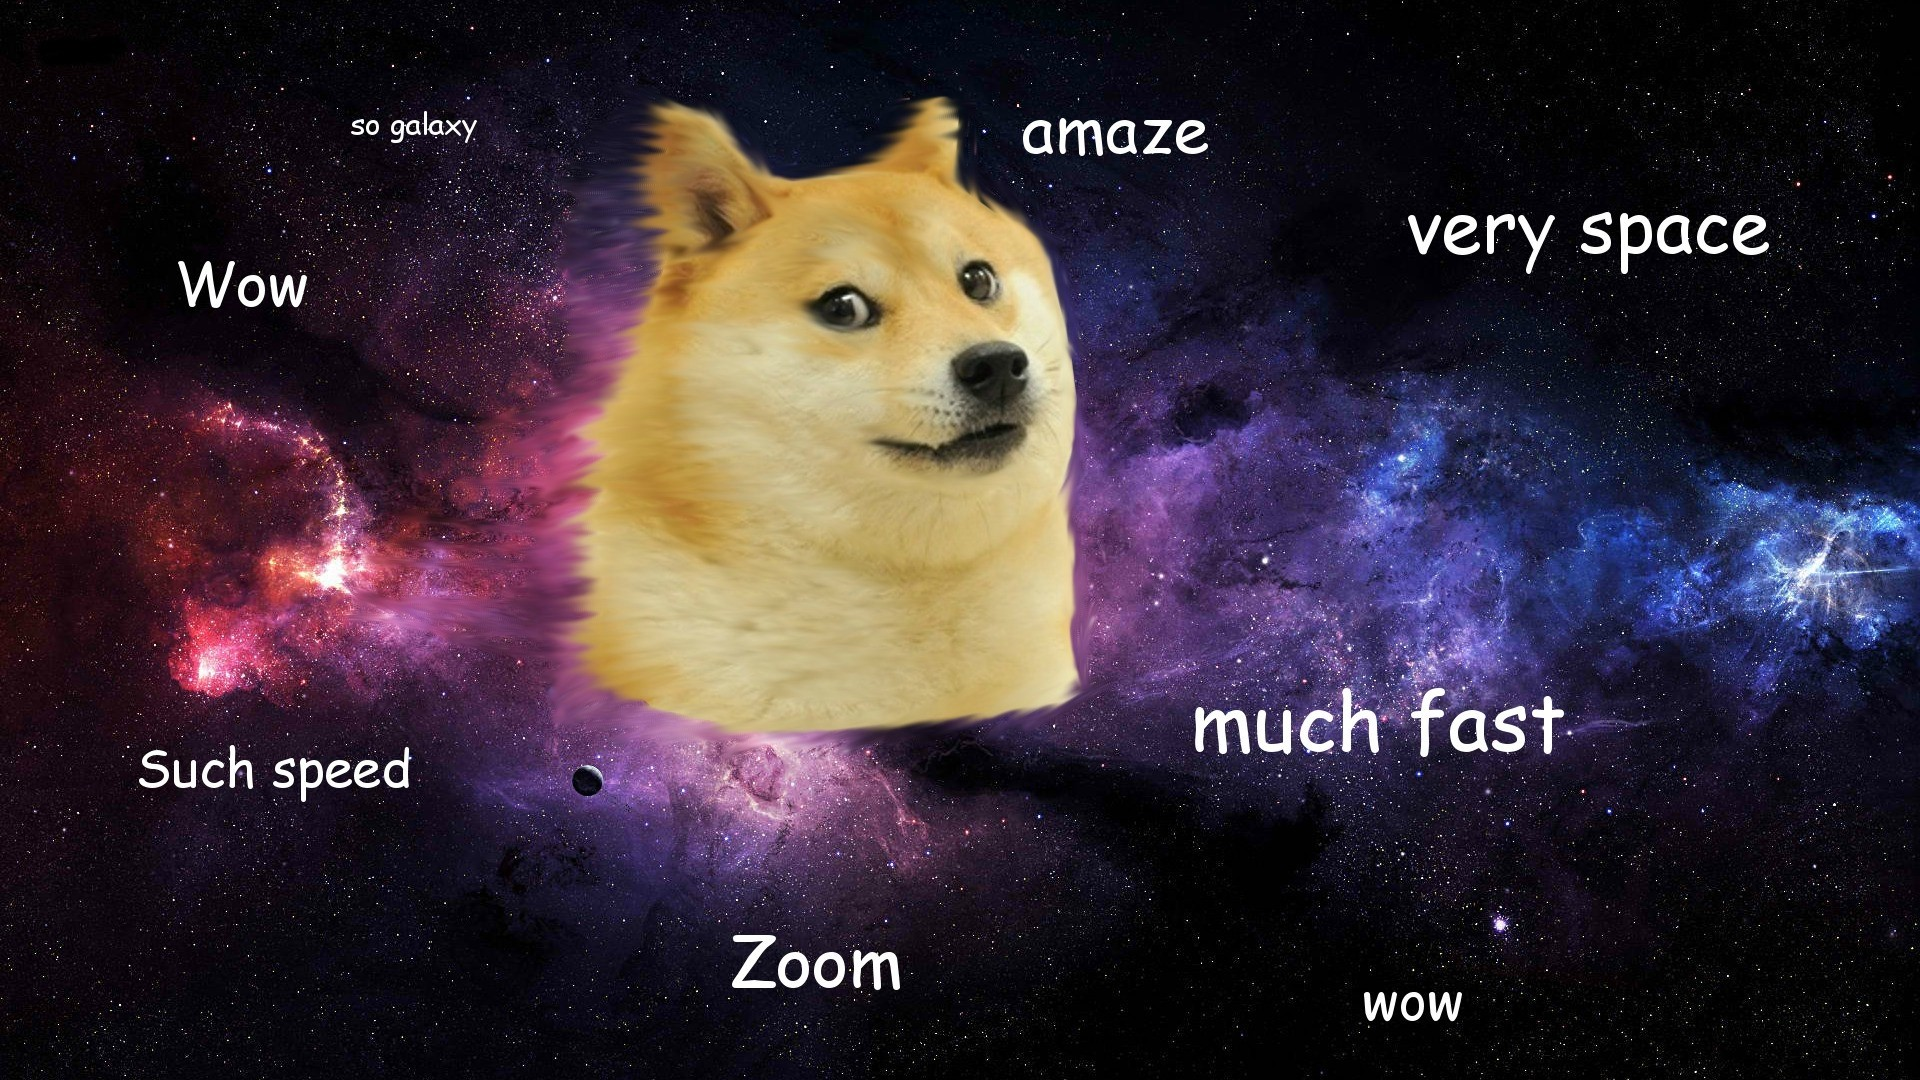 1920x1080 Doge in SPACE - Doge Wallpaper () (14011)